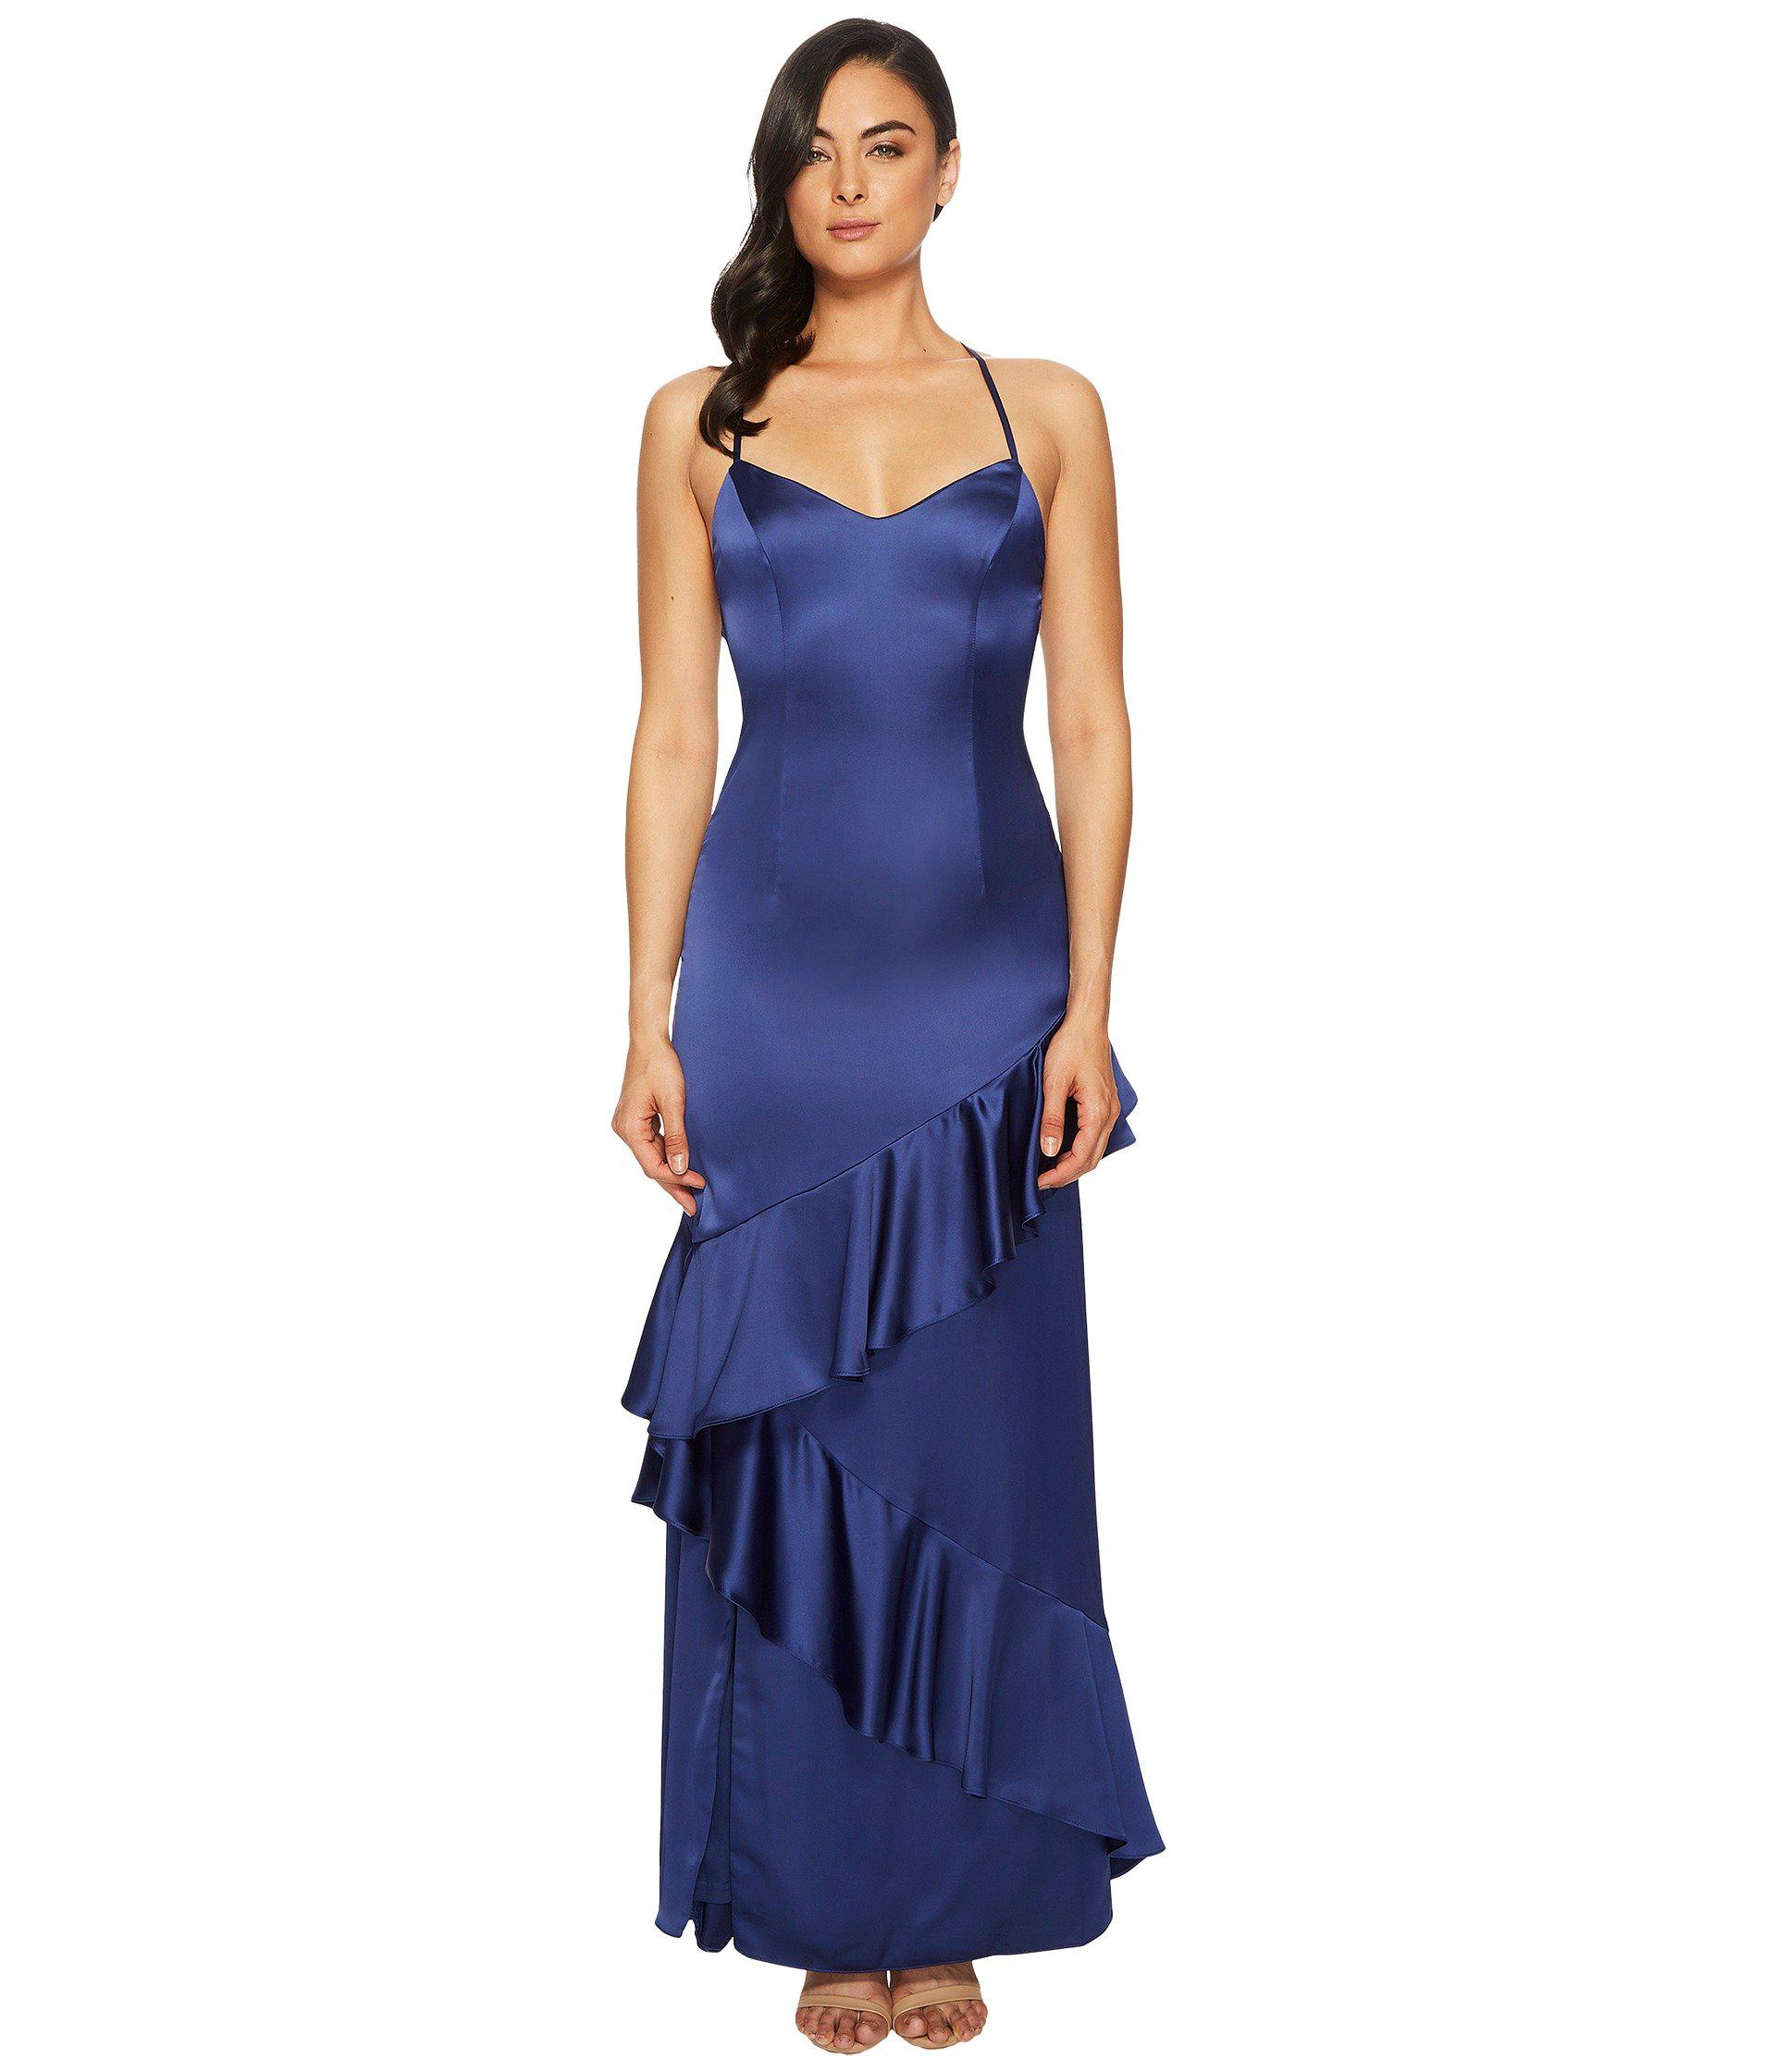 Lyst - Adrianna Papell Long Satin Ruffled Slip Gown in Blue - Save ...